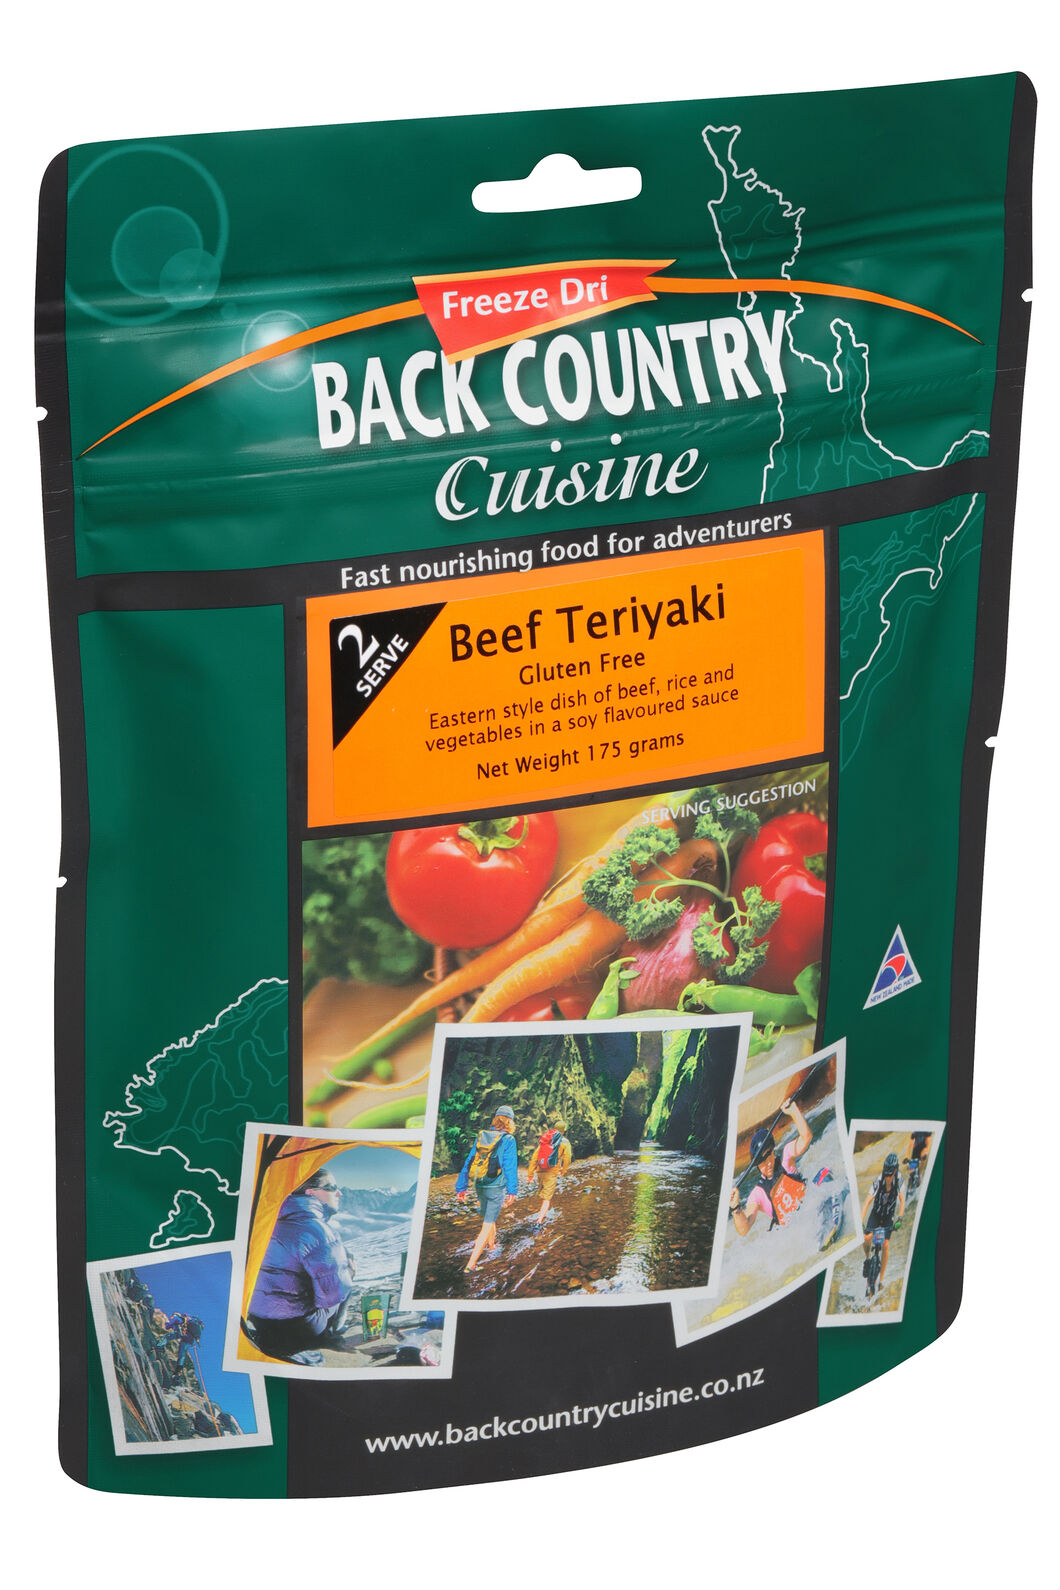 Back Country Cuisine Beef Teriyaki (Gluten Free) — Regular Serve, None, hi-res